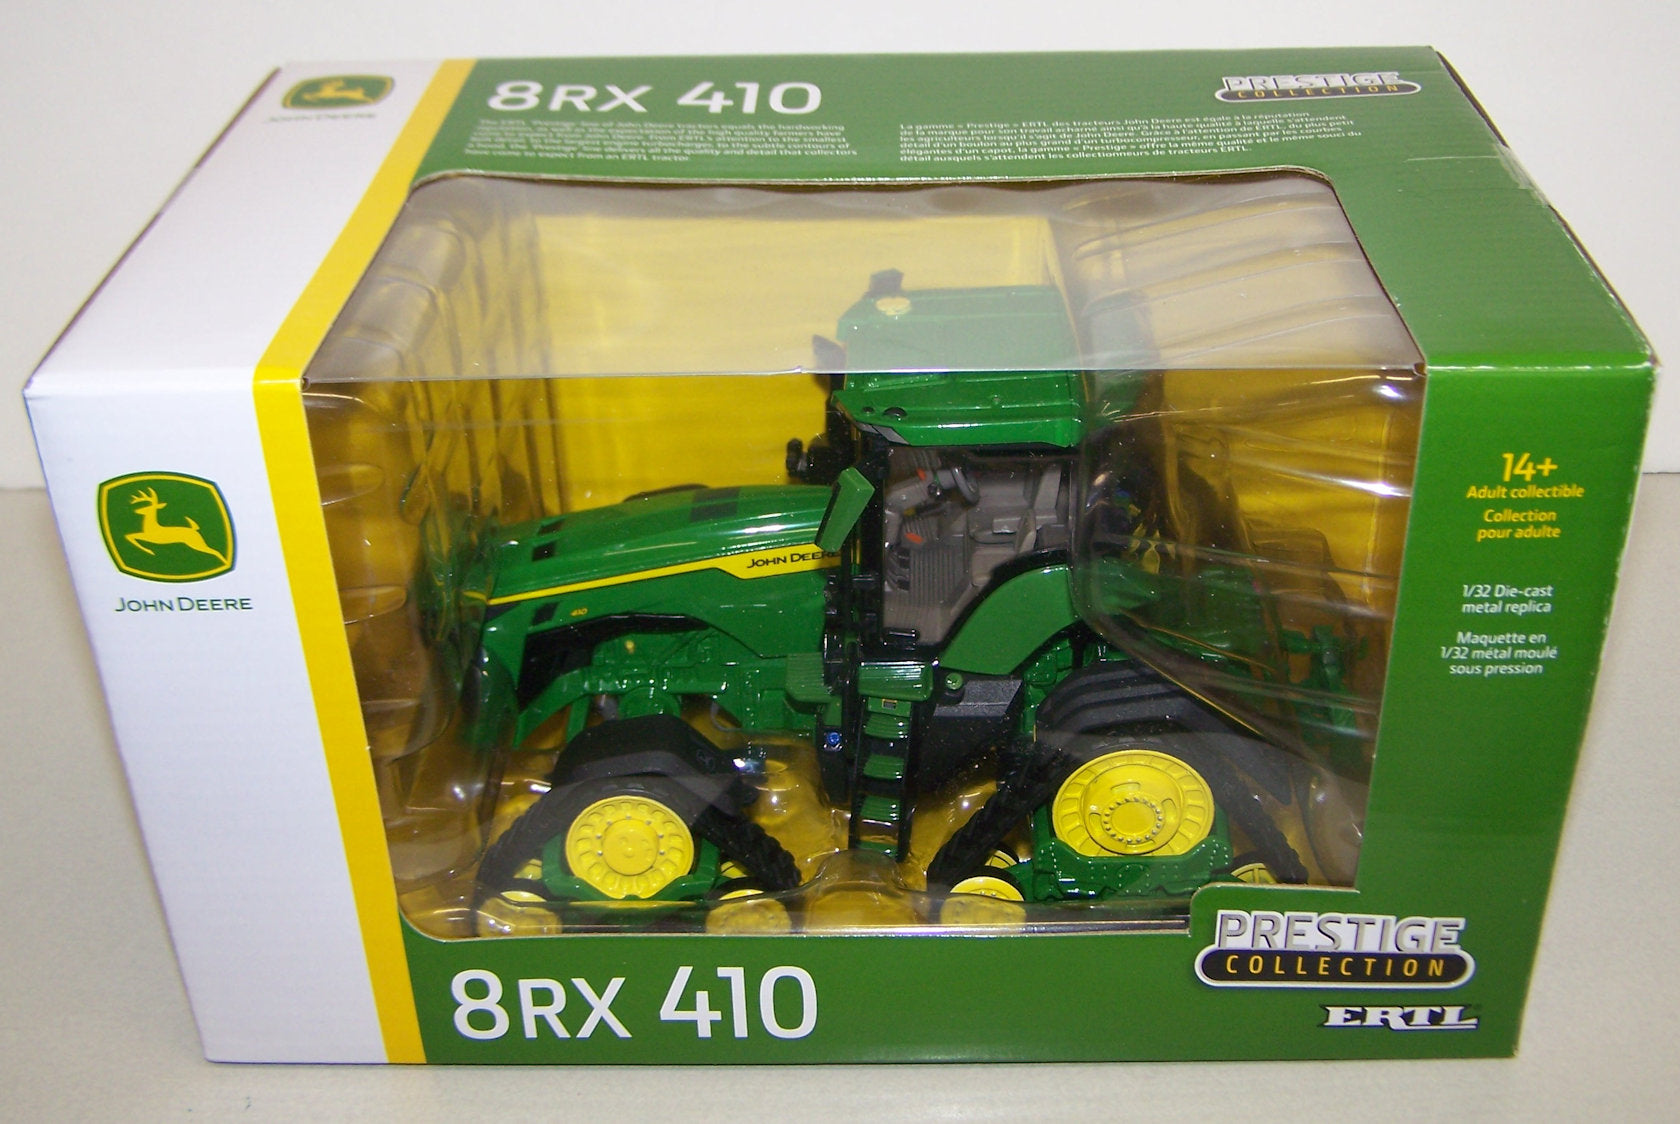 #45707 1/32 John Deere 8RX 410 Track Tractor, Prestige Collection